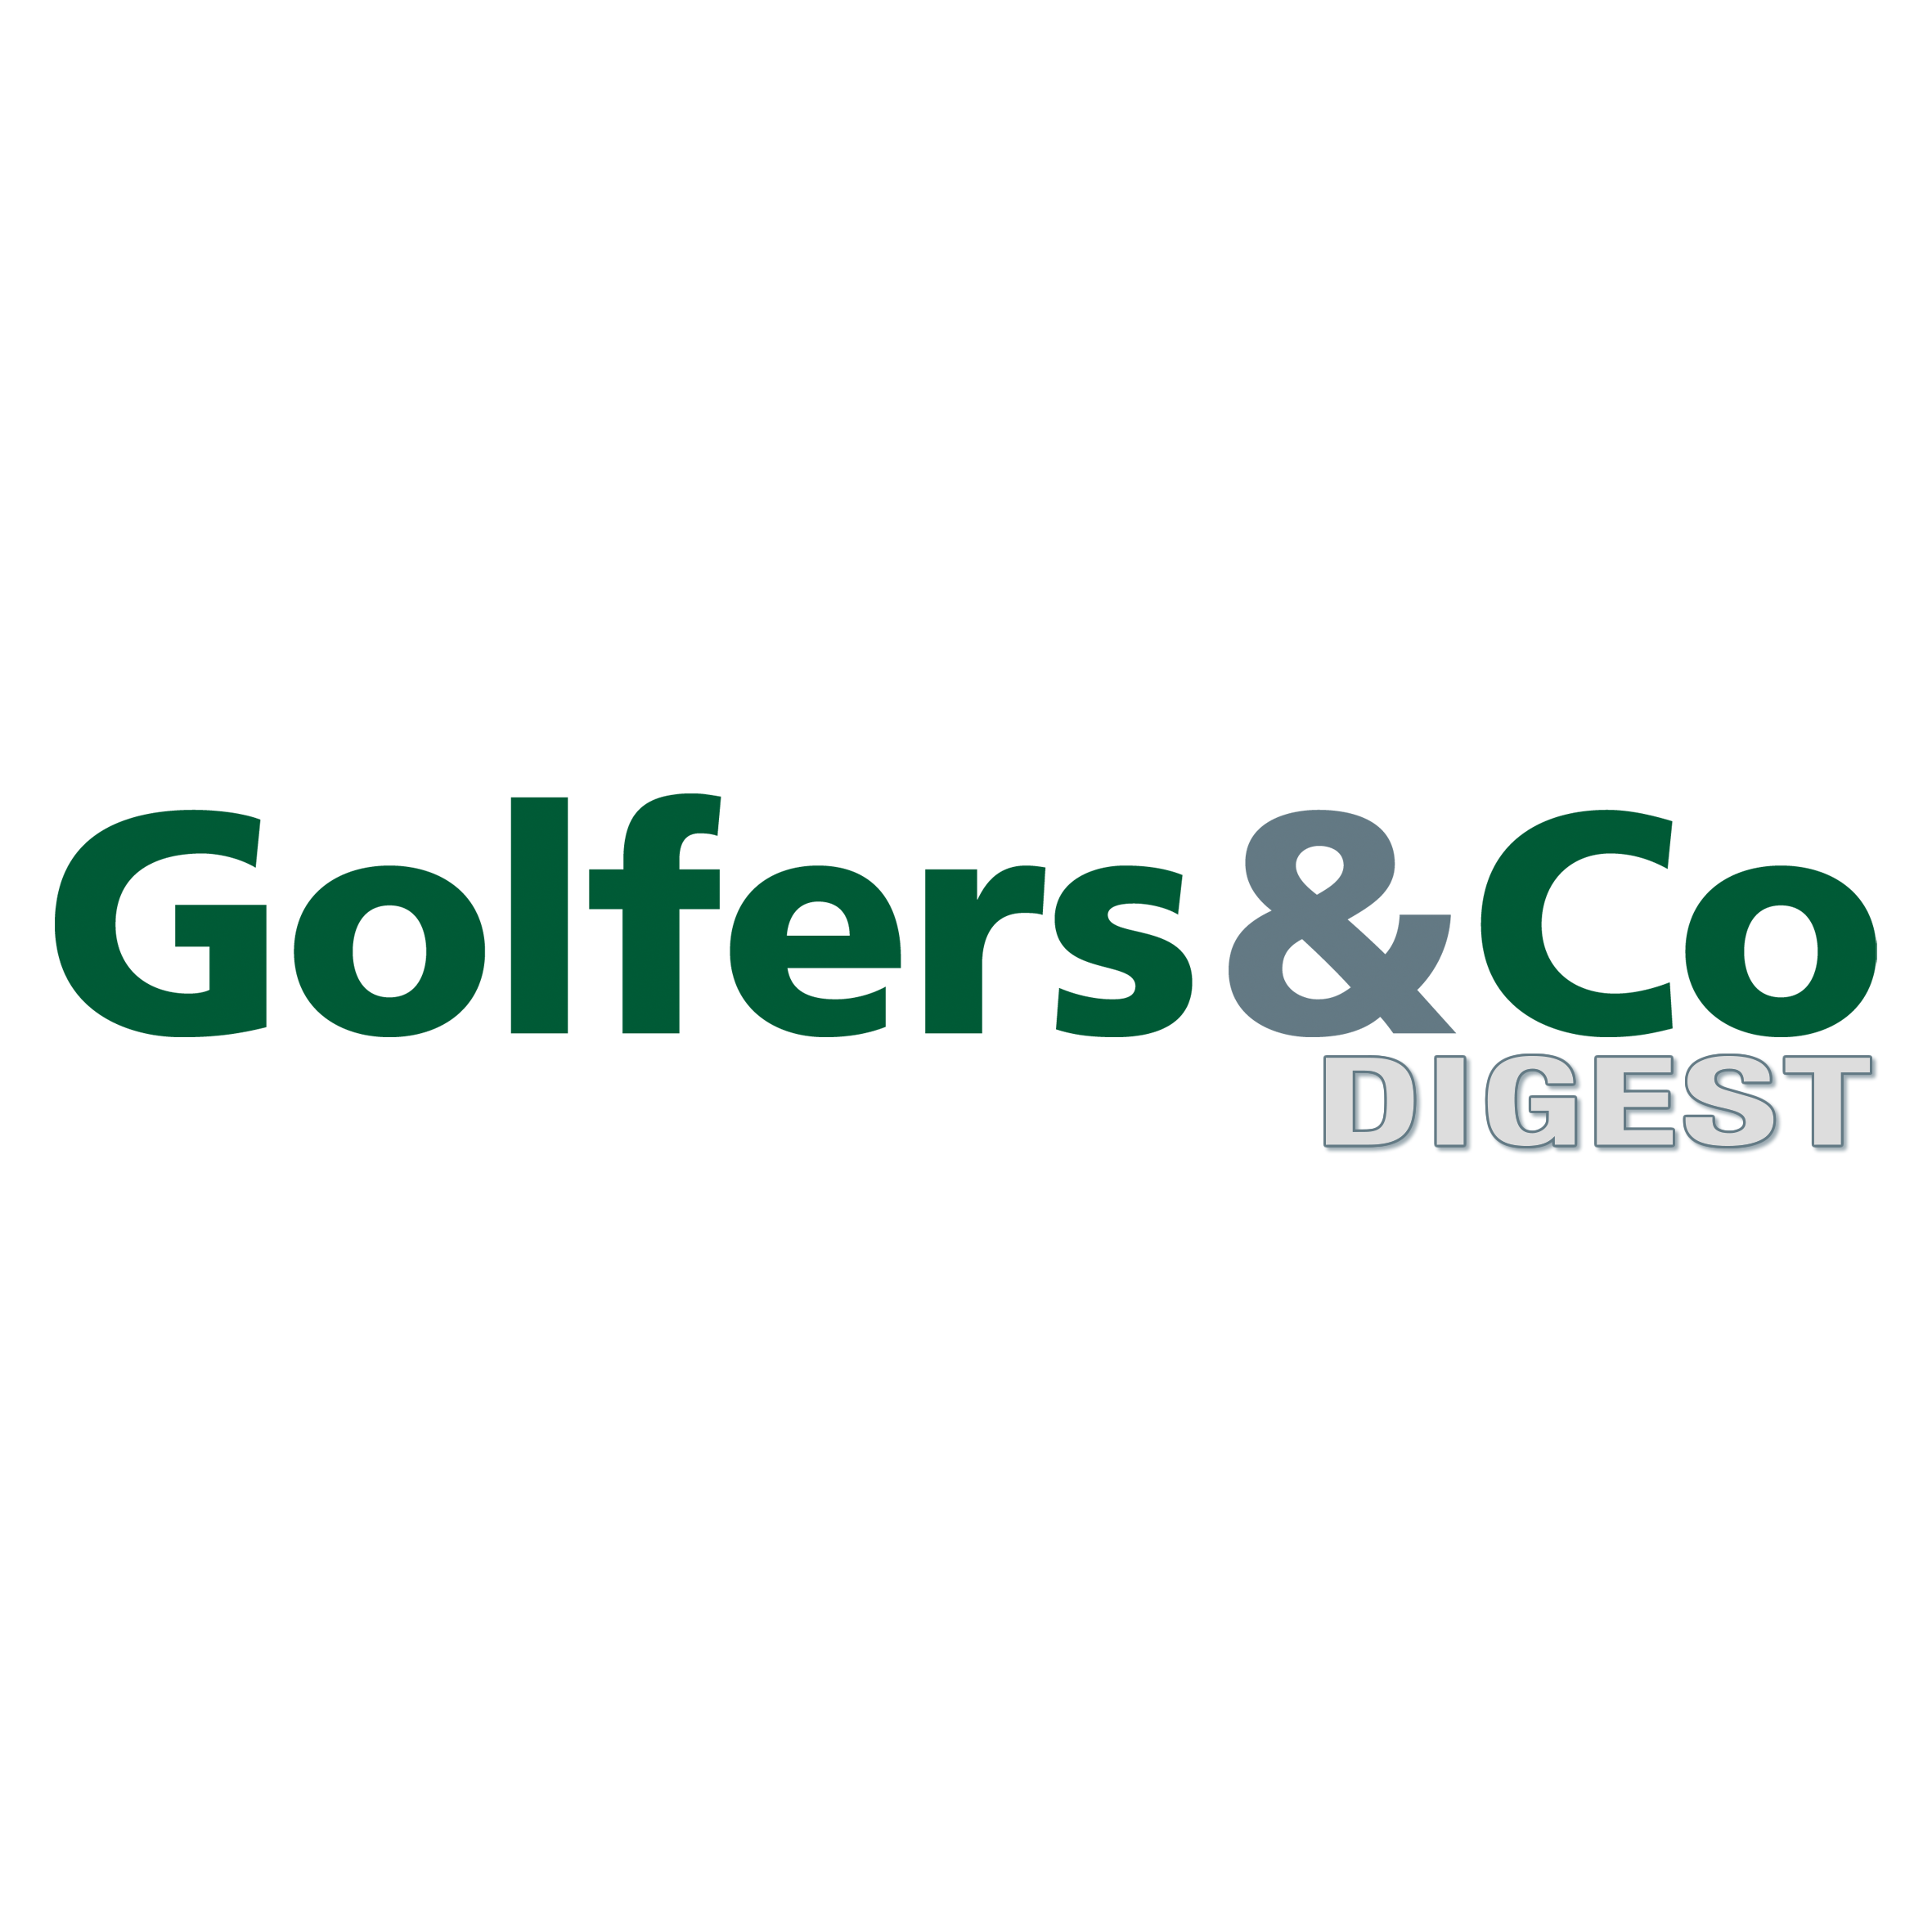 Logo of golf news author named [object Object]